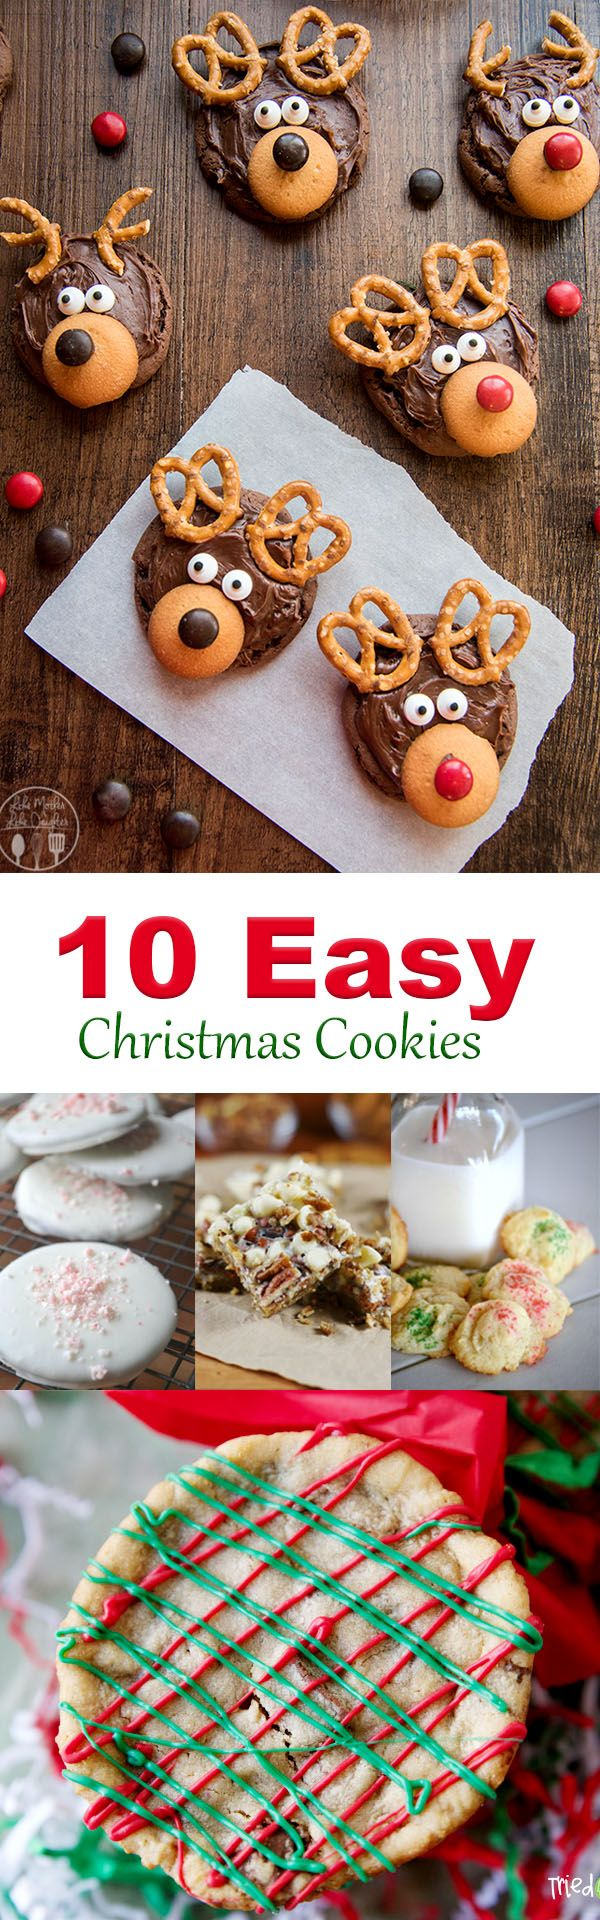 Ten of the easiest Christmas Cookie Recipes.  Easy Christmas Cookie recipes for reindeer cookies, gingerbread cookies, red and green cookies, and more.